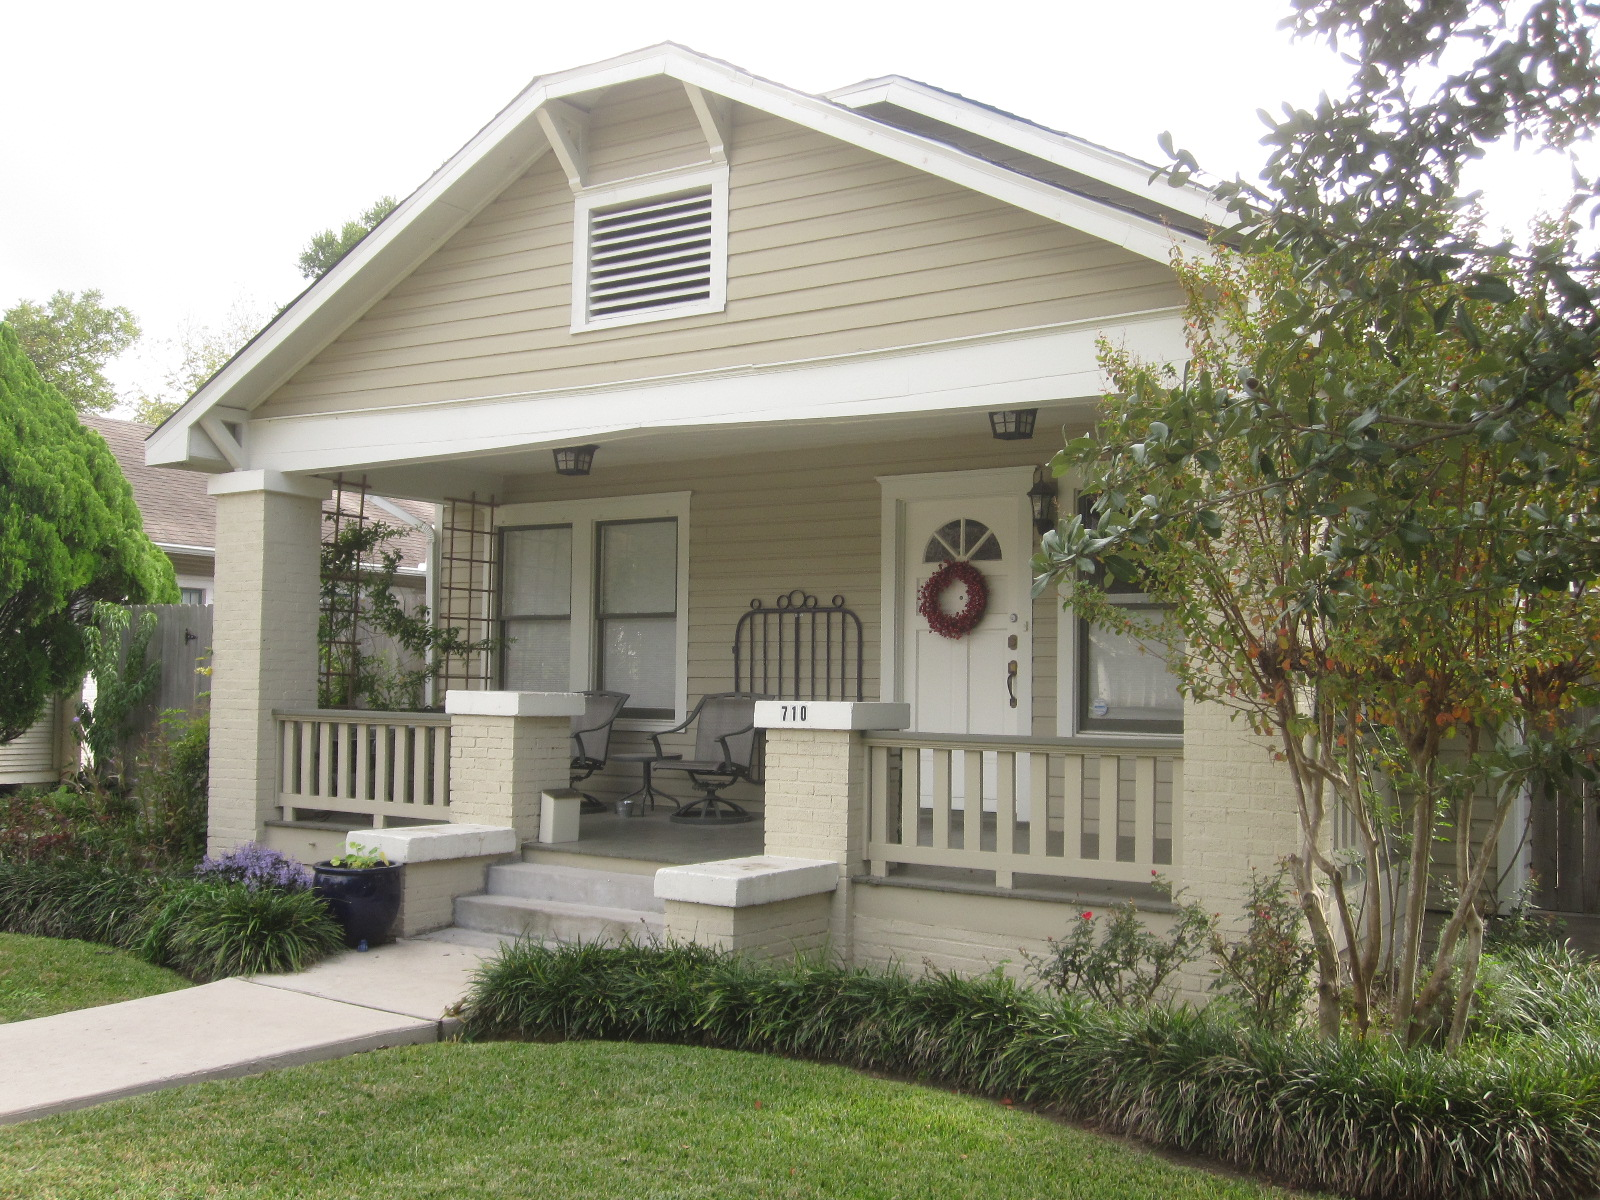 The other houston more beautiful bungalow paint colors Bungalo house